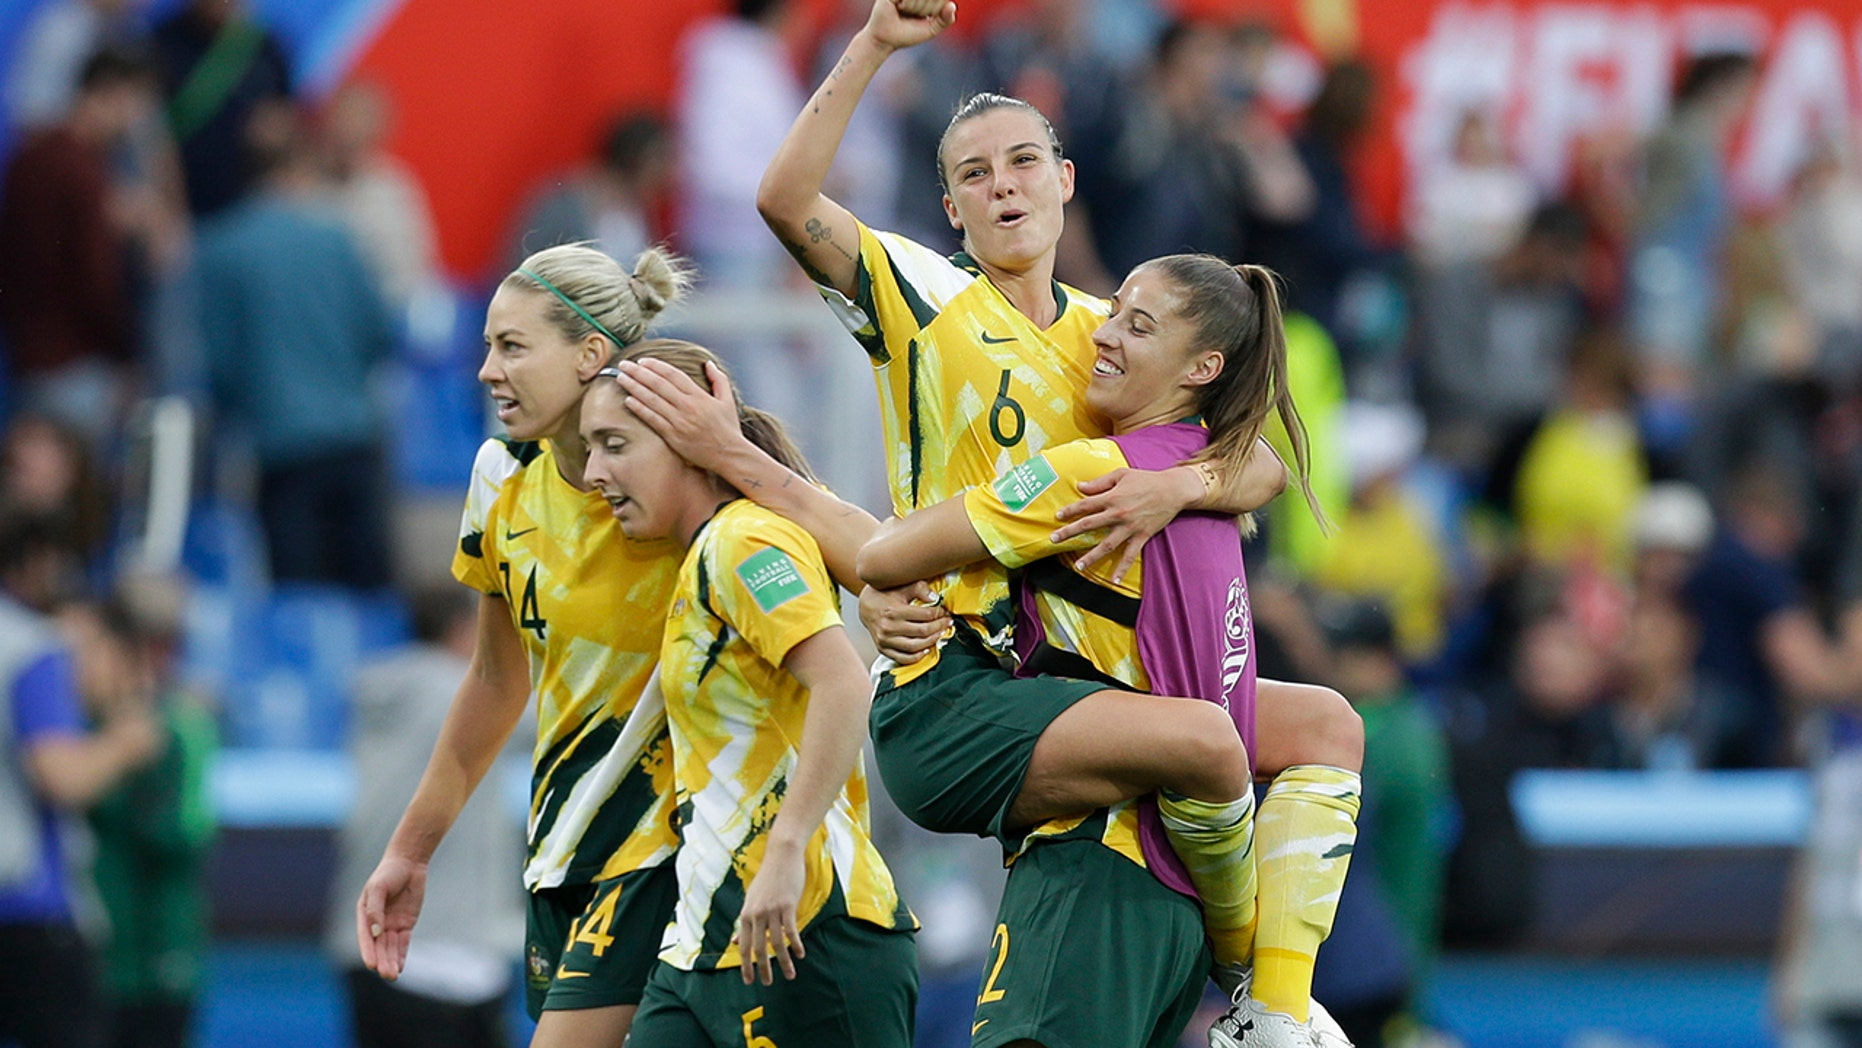 Australia's Chloe Logarzo, top, celebrates with a teammate at the end of the Women's World Cup Group C soccer match between Australia and Brazil at Stade de la Mosson in Montpellier, France, Thursday, June 13, 2019. Australia defeated Brazil 3-2. (AP Photo/Claude Paris)